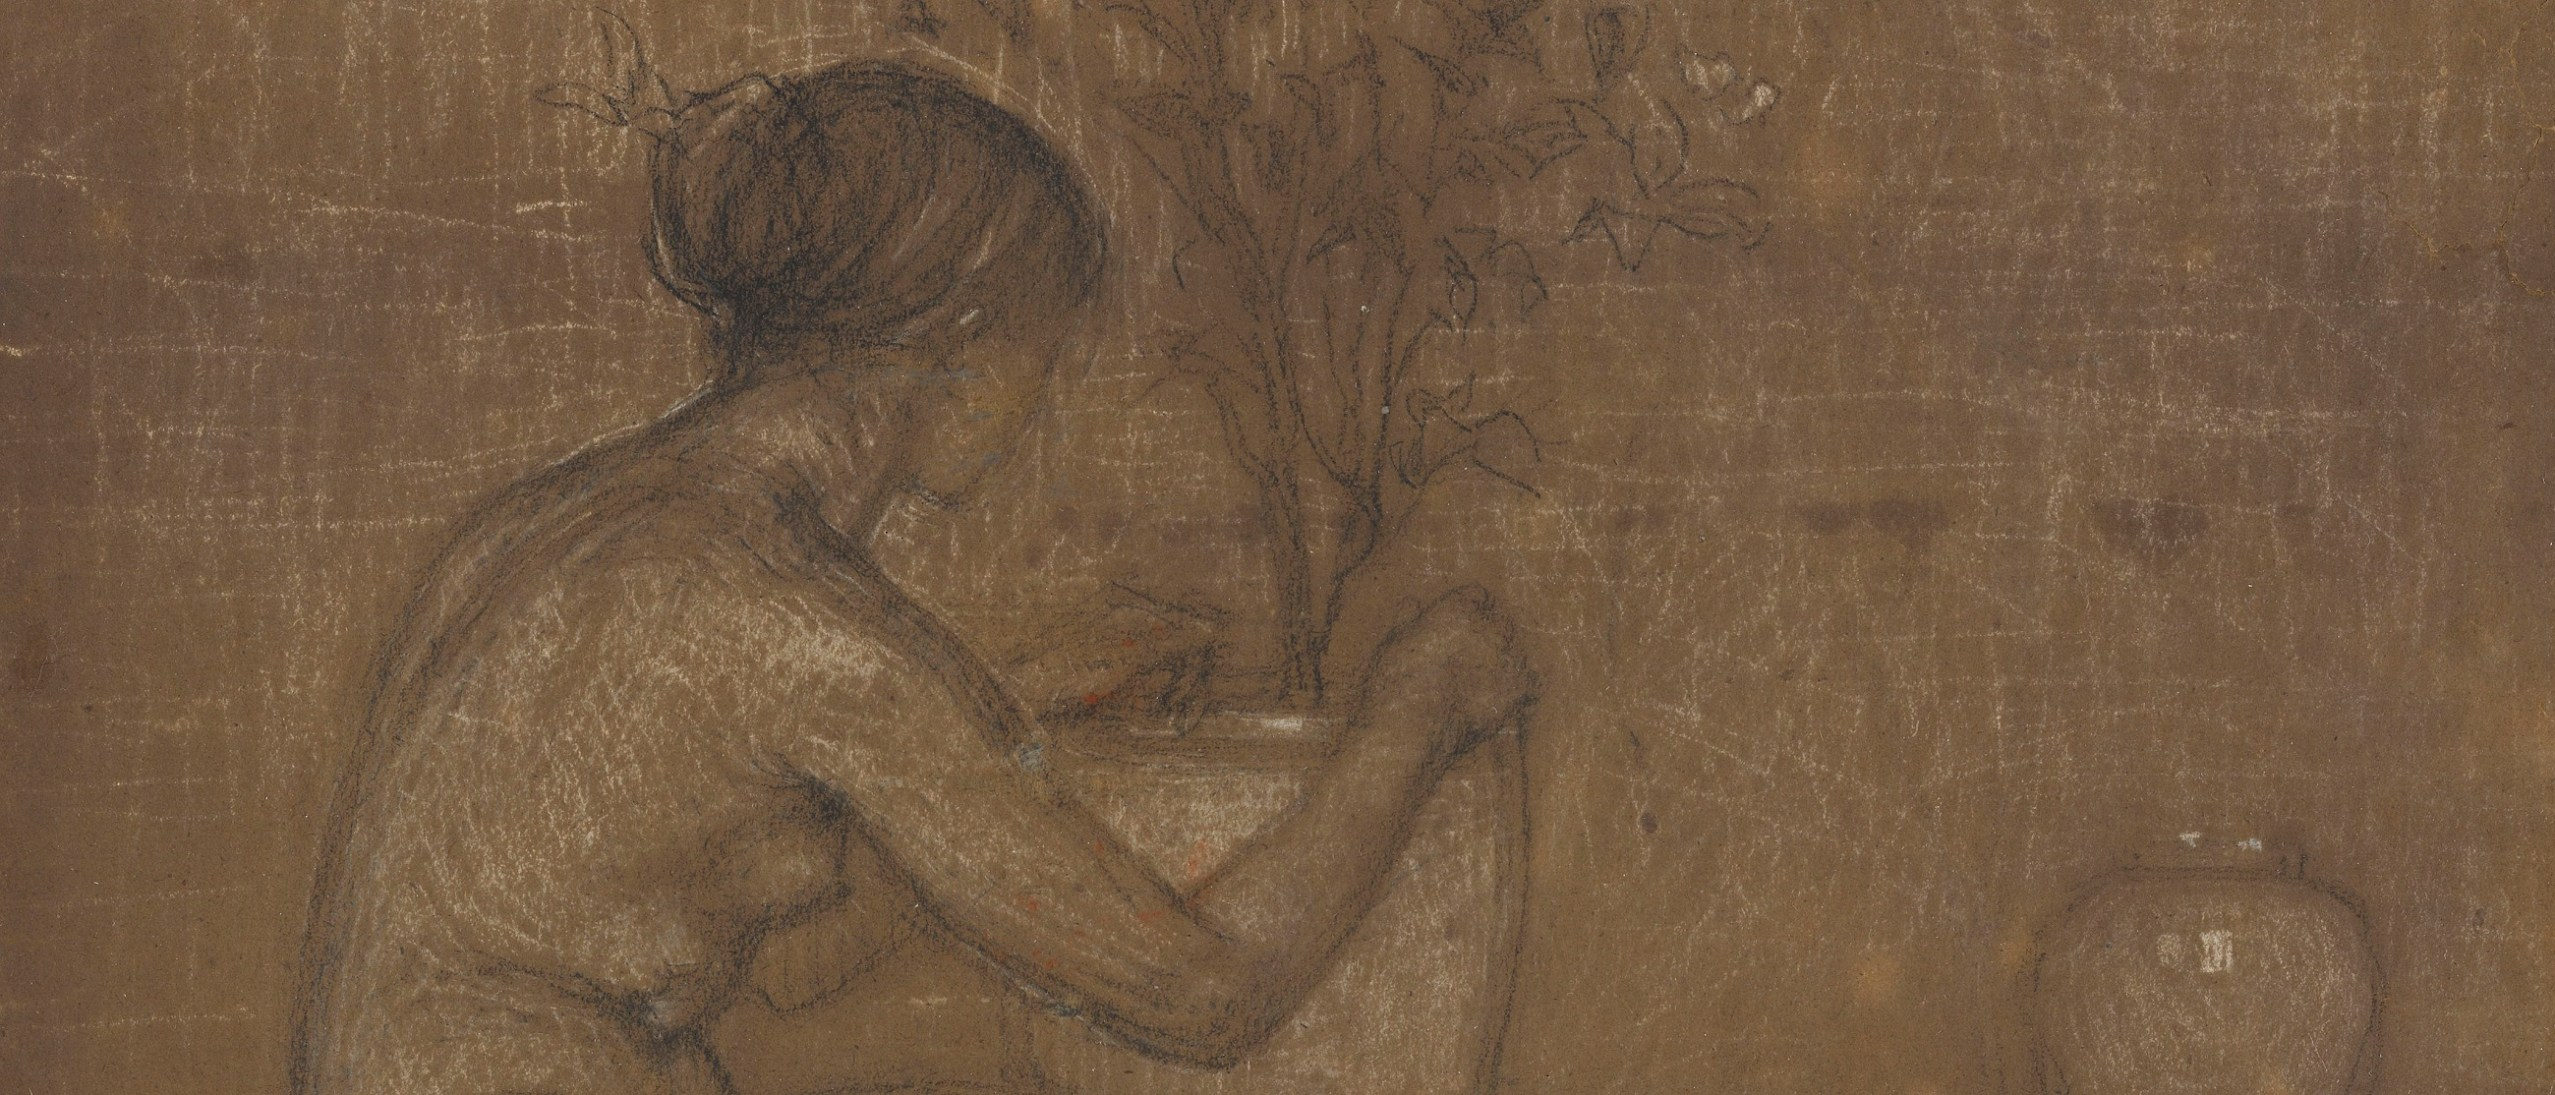 Detail, Crouching Figure: Study for The White Symphony: Three Girls. 1869–70; Black and white chalk on brown paper; Freer Gallery of Art, Gift of Charles Lang Freer, F1902.139 image